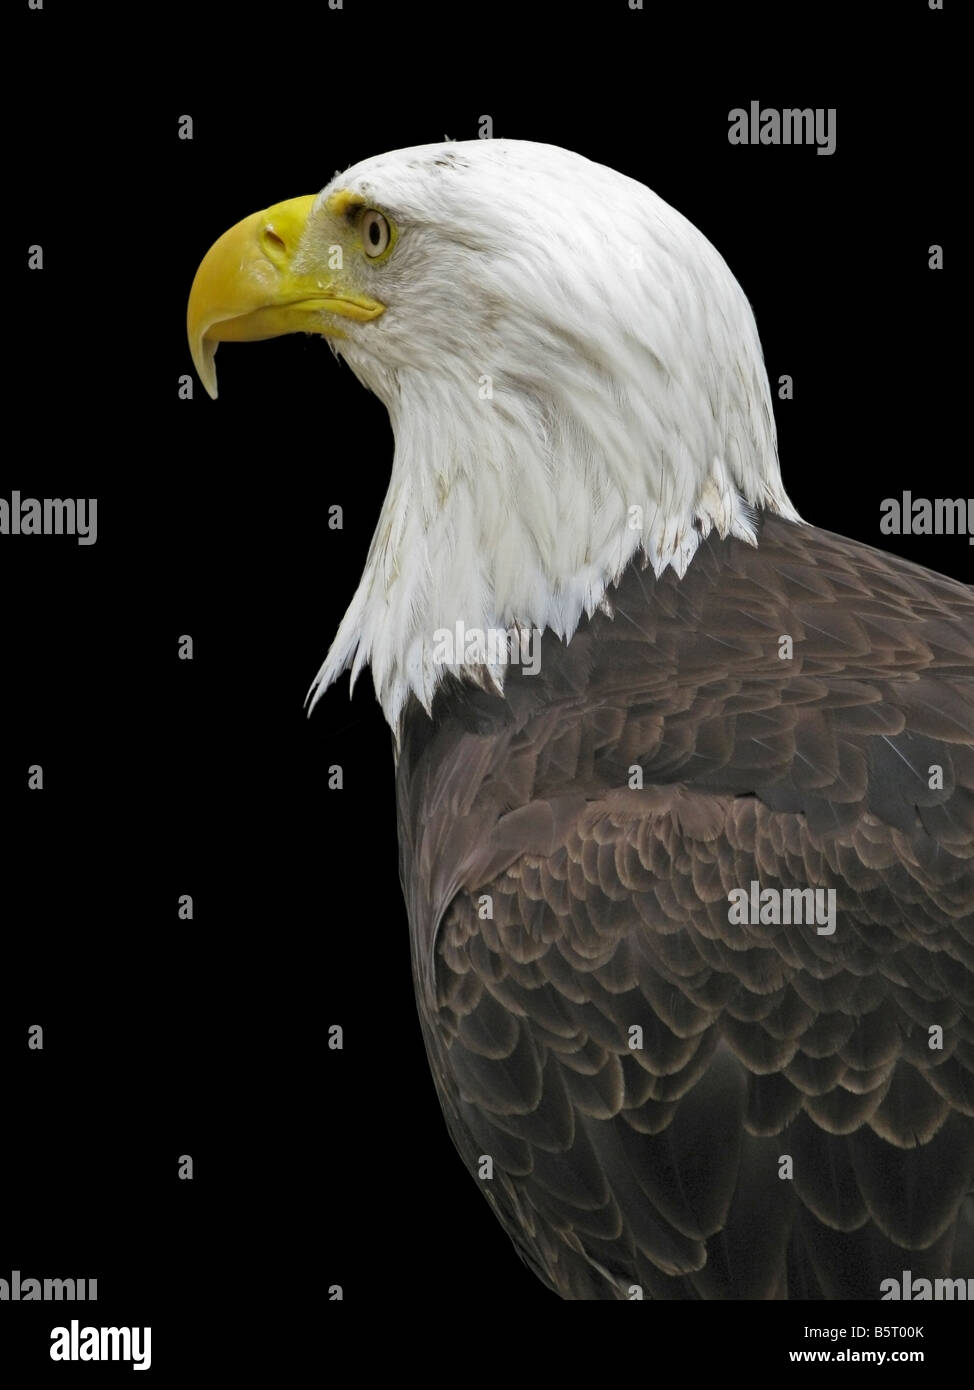 Head and shoulders of a captive 'bald eagle' against a black background. Closed beak. - Stock Image